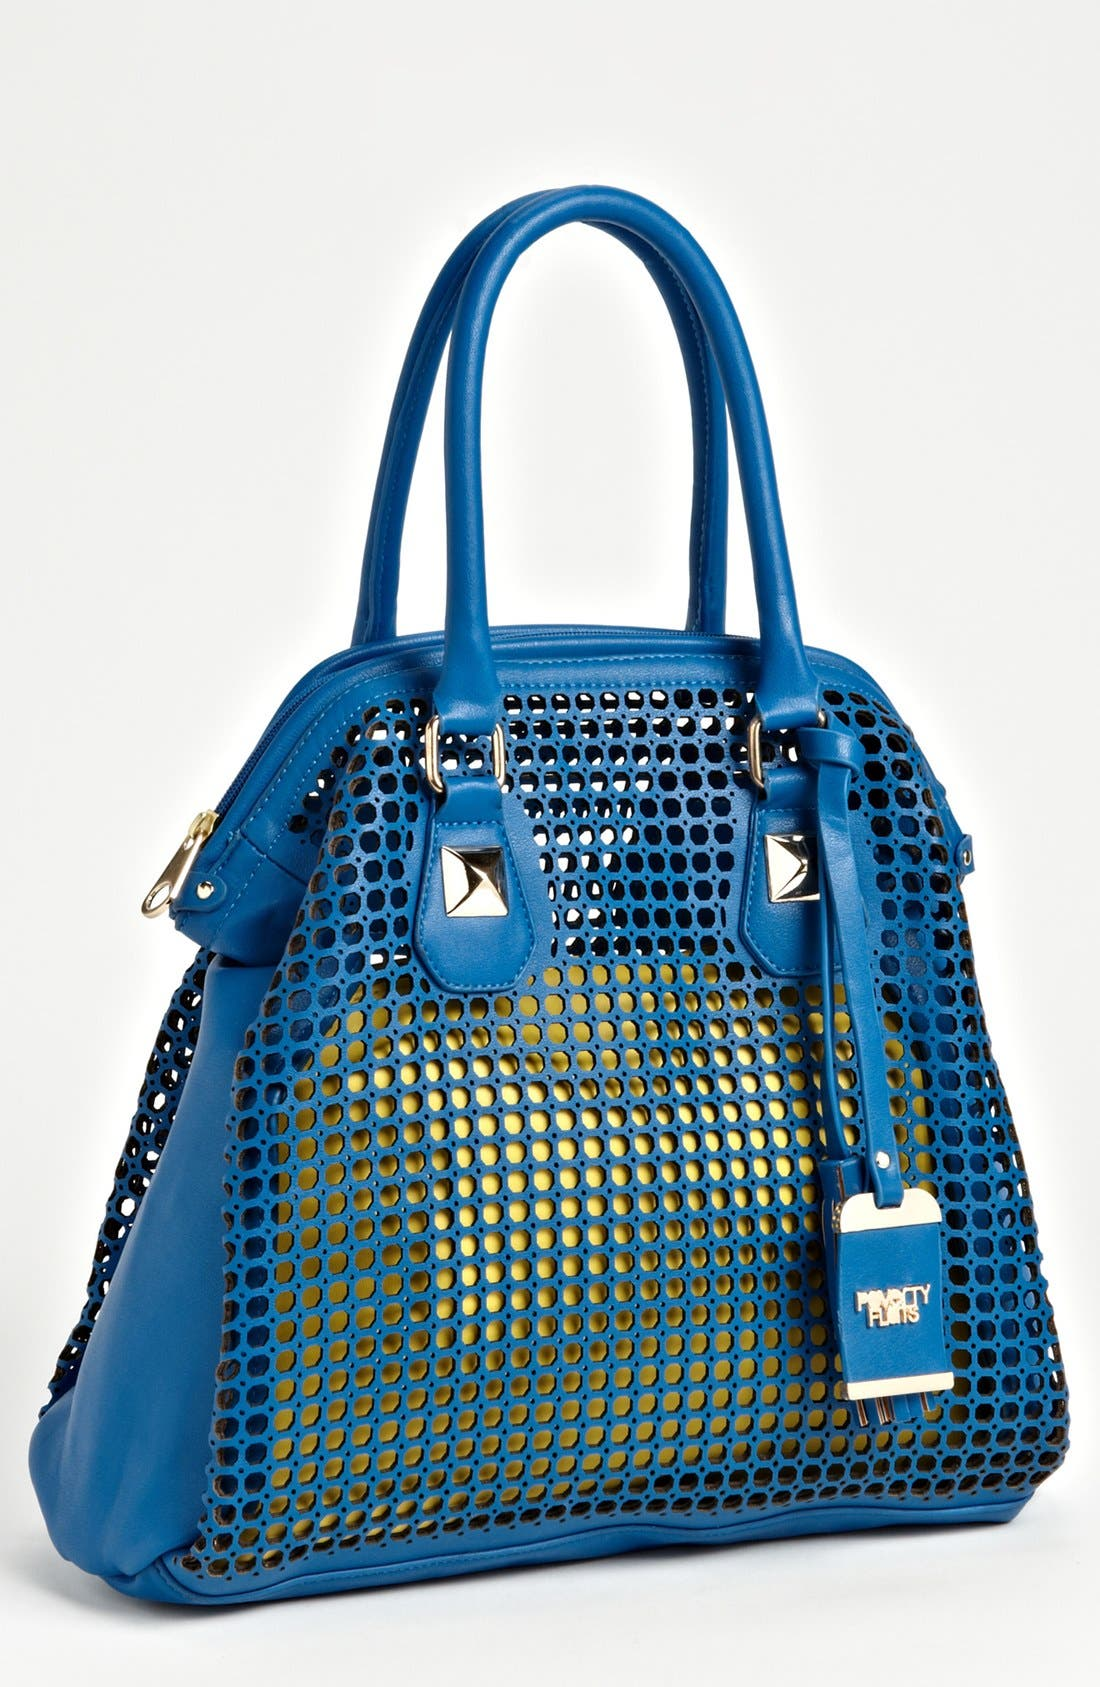 Main Image - POVERTY FLATS by rian Perforated Faux Leather Shoulder Bag